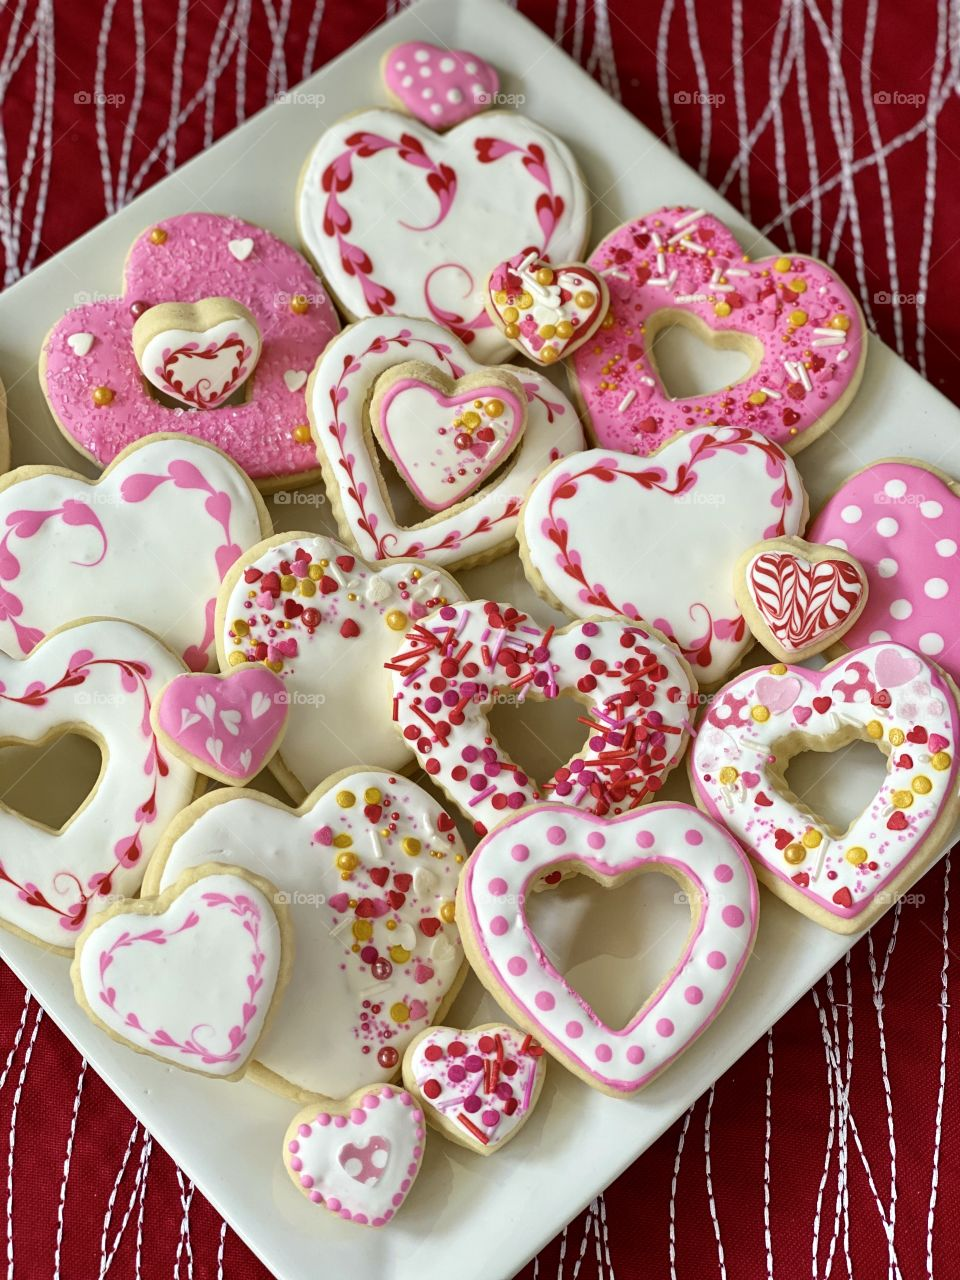 A beautiful plate of Valentine's Day cookies frosted with royal icing.